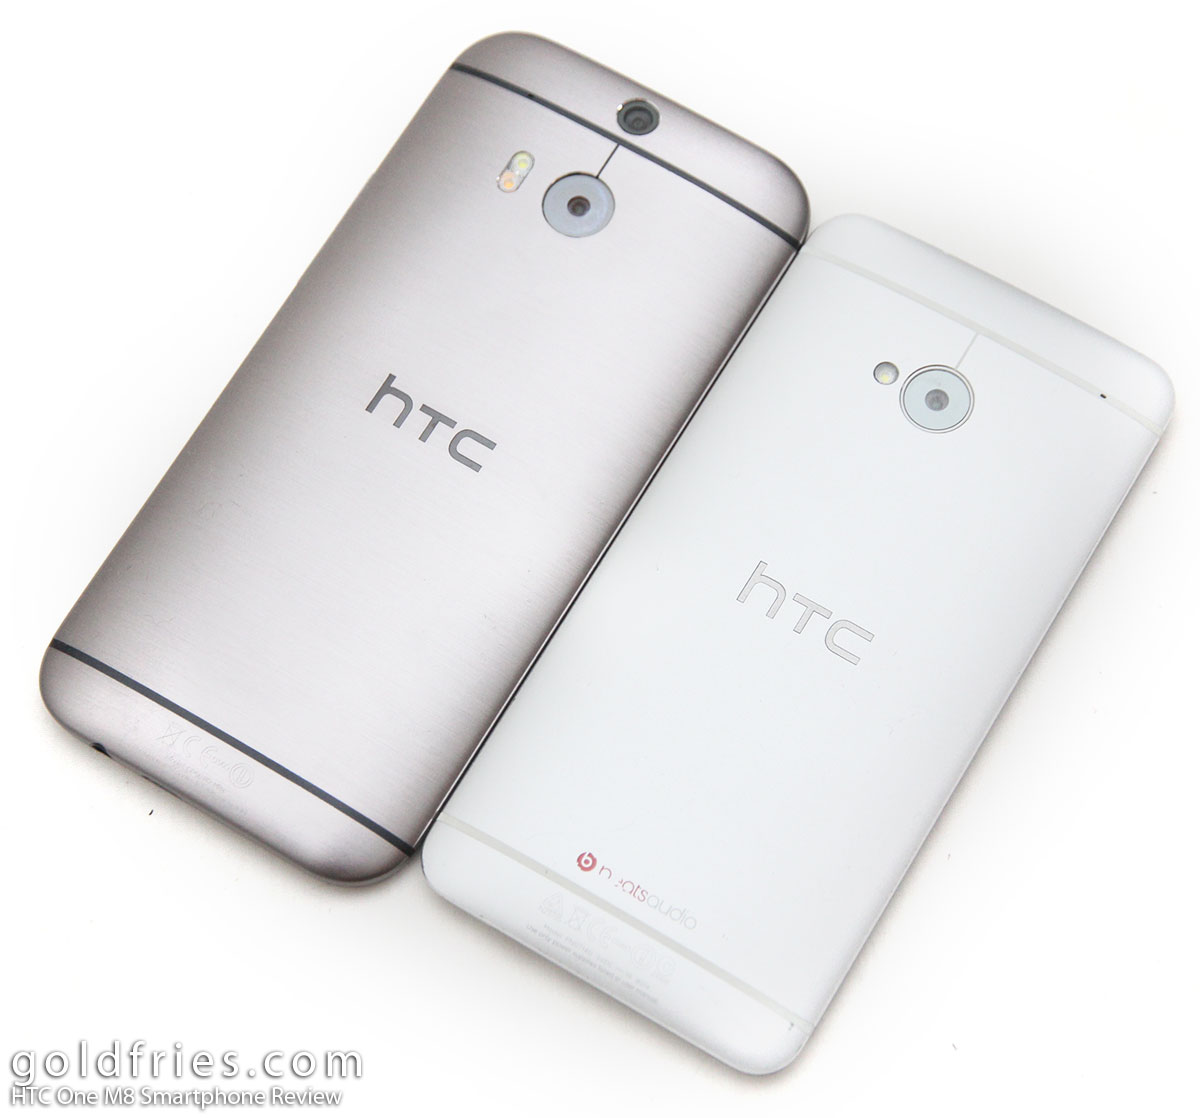 HTC One M8 Smartphone Review